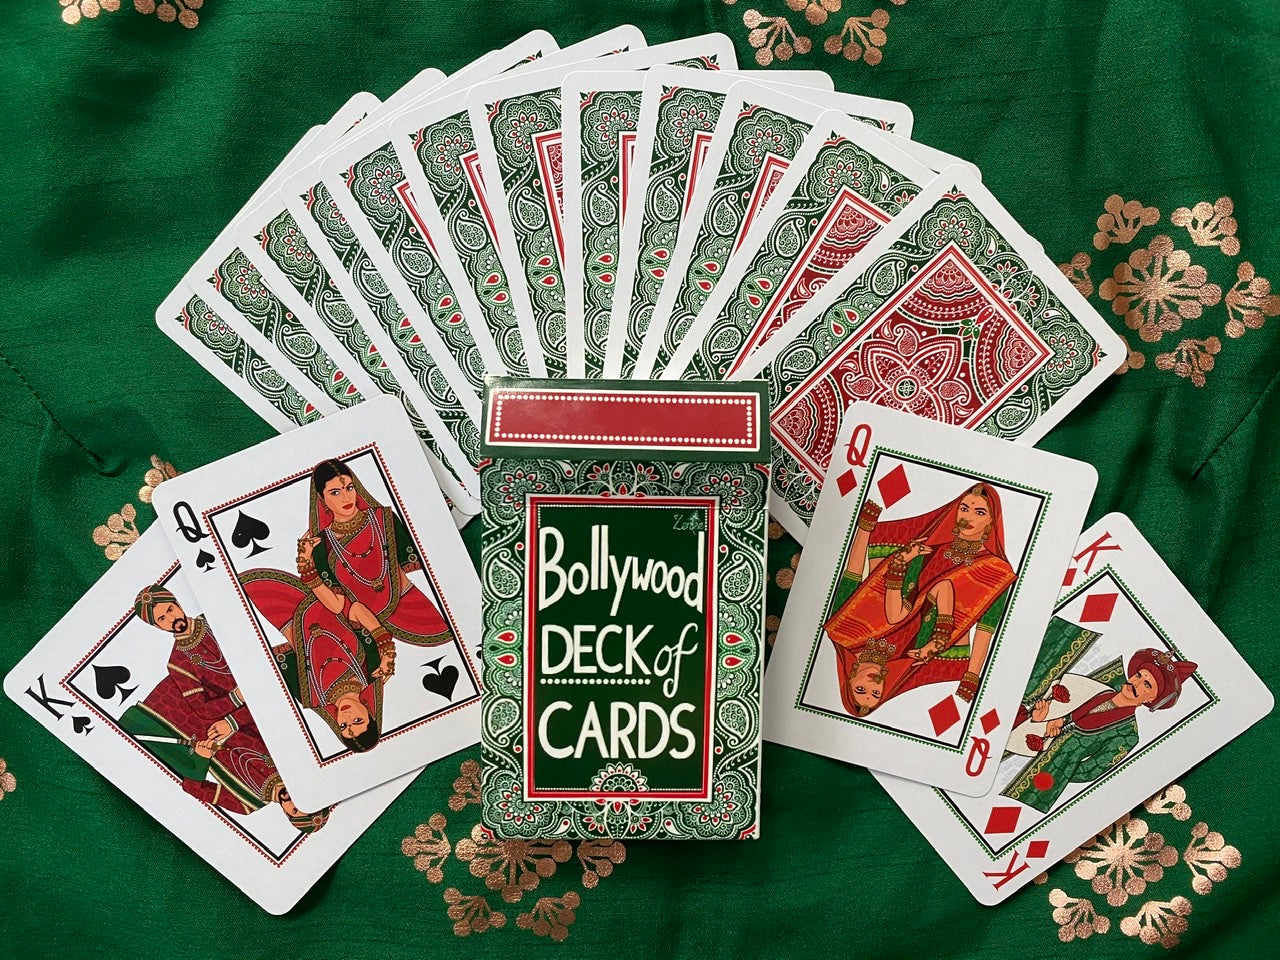 Bollywood Deck of Cards